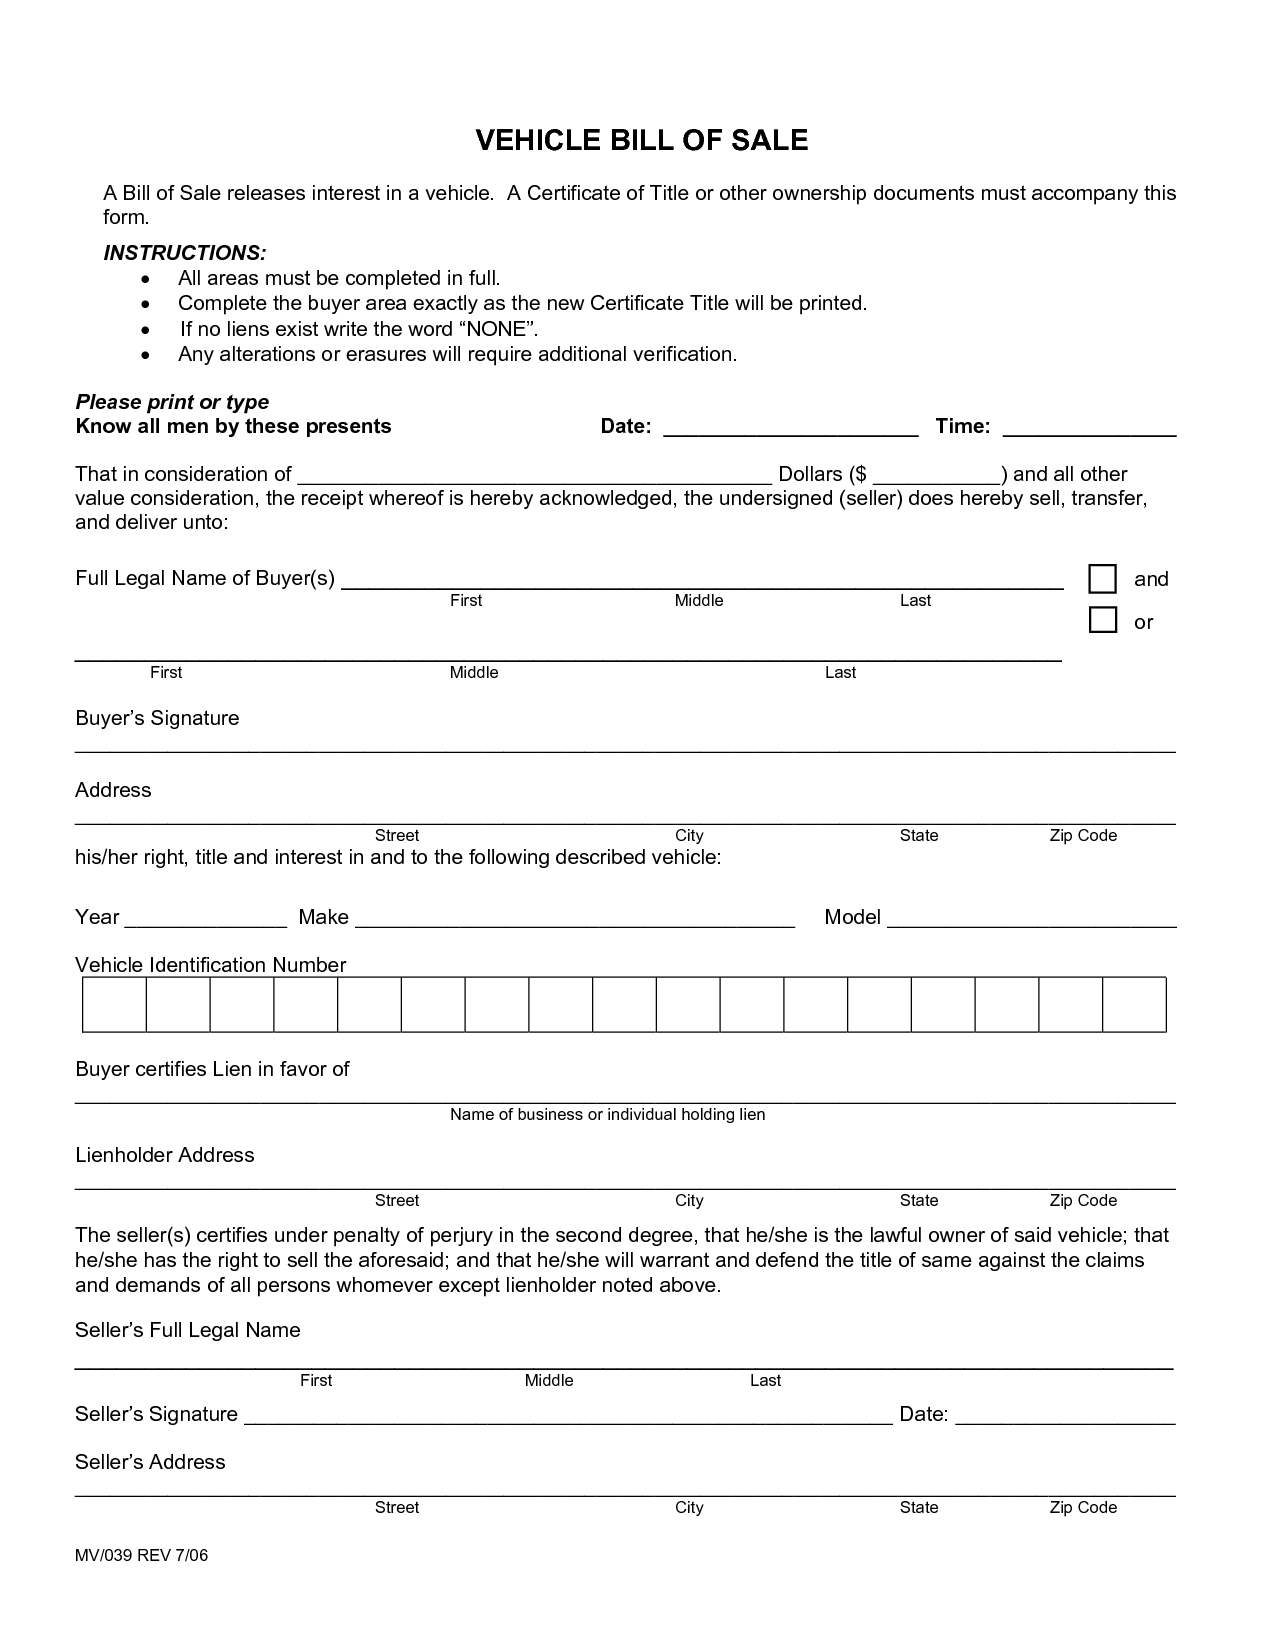 Printable Sample Free Car Bill Of Sale Template Form | Laywers - Free Credit Report Printable Form